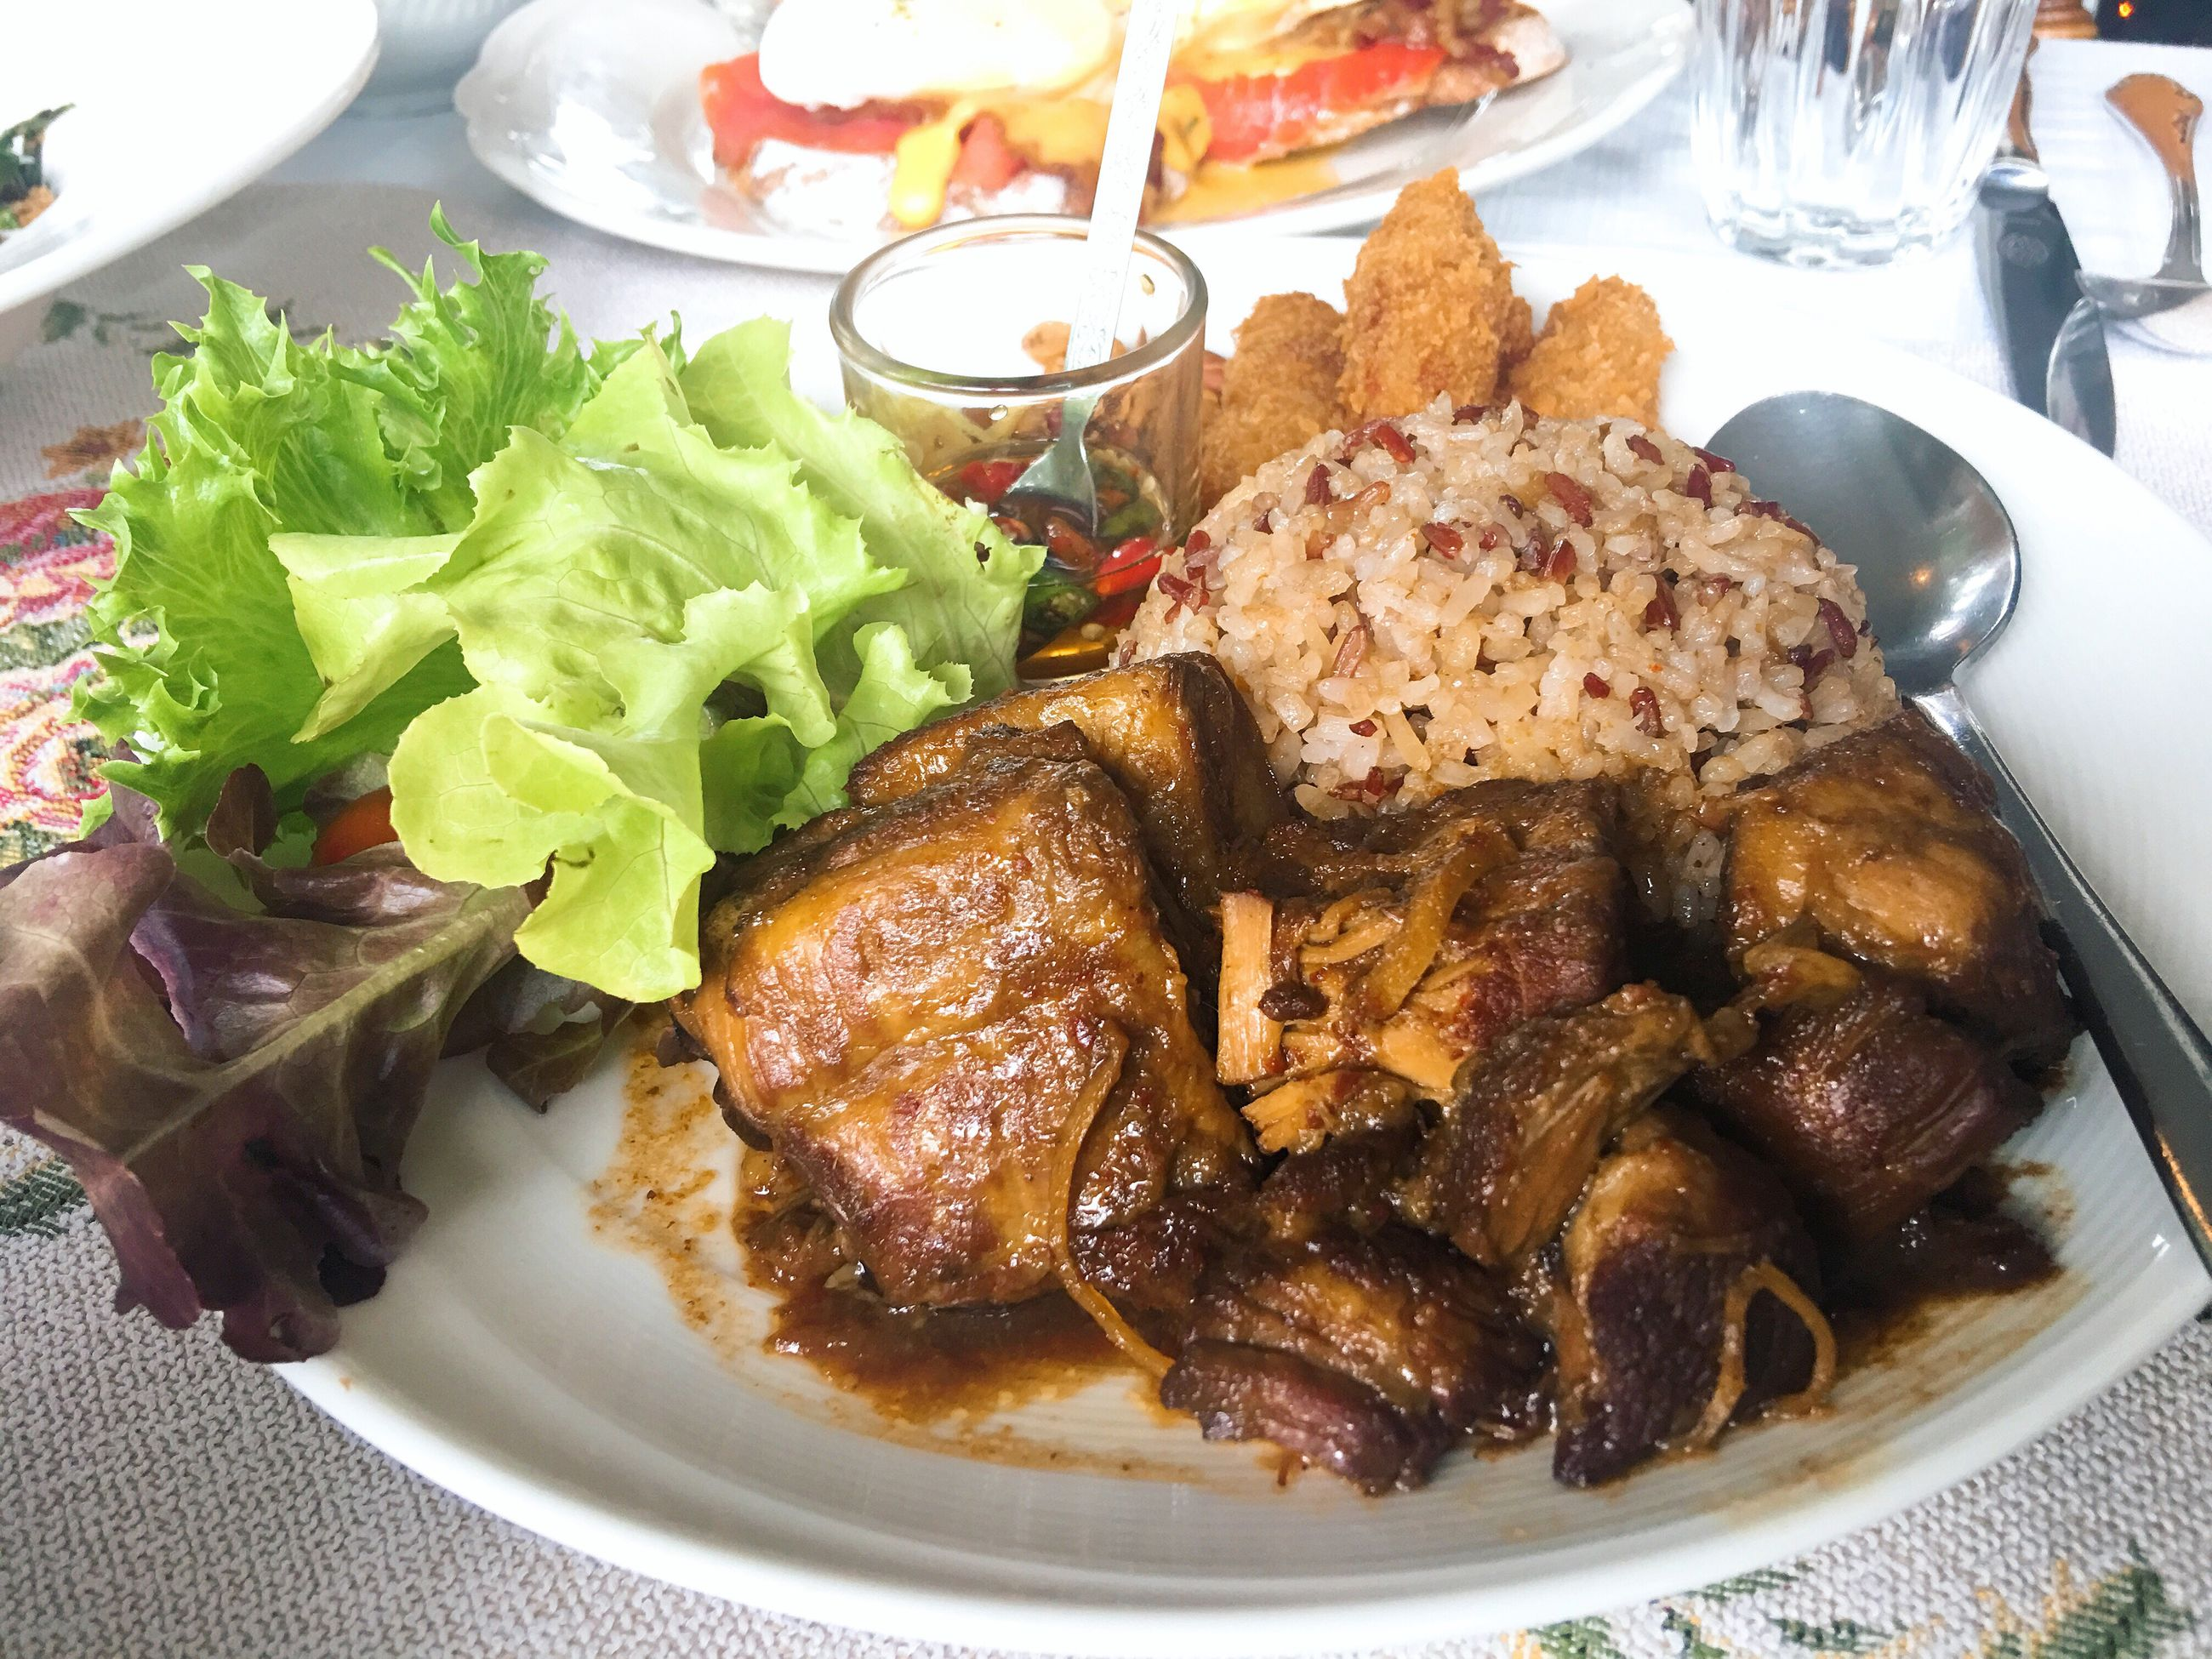 freshness, food, food and drink, plate, ready-to-eat, serving size, meat, indoors, no people, close-up, lamb - meat, day